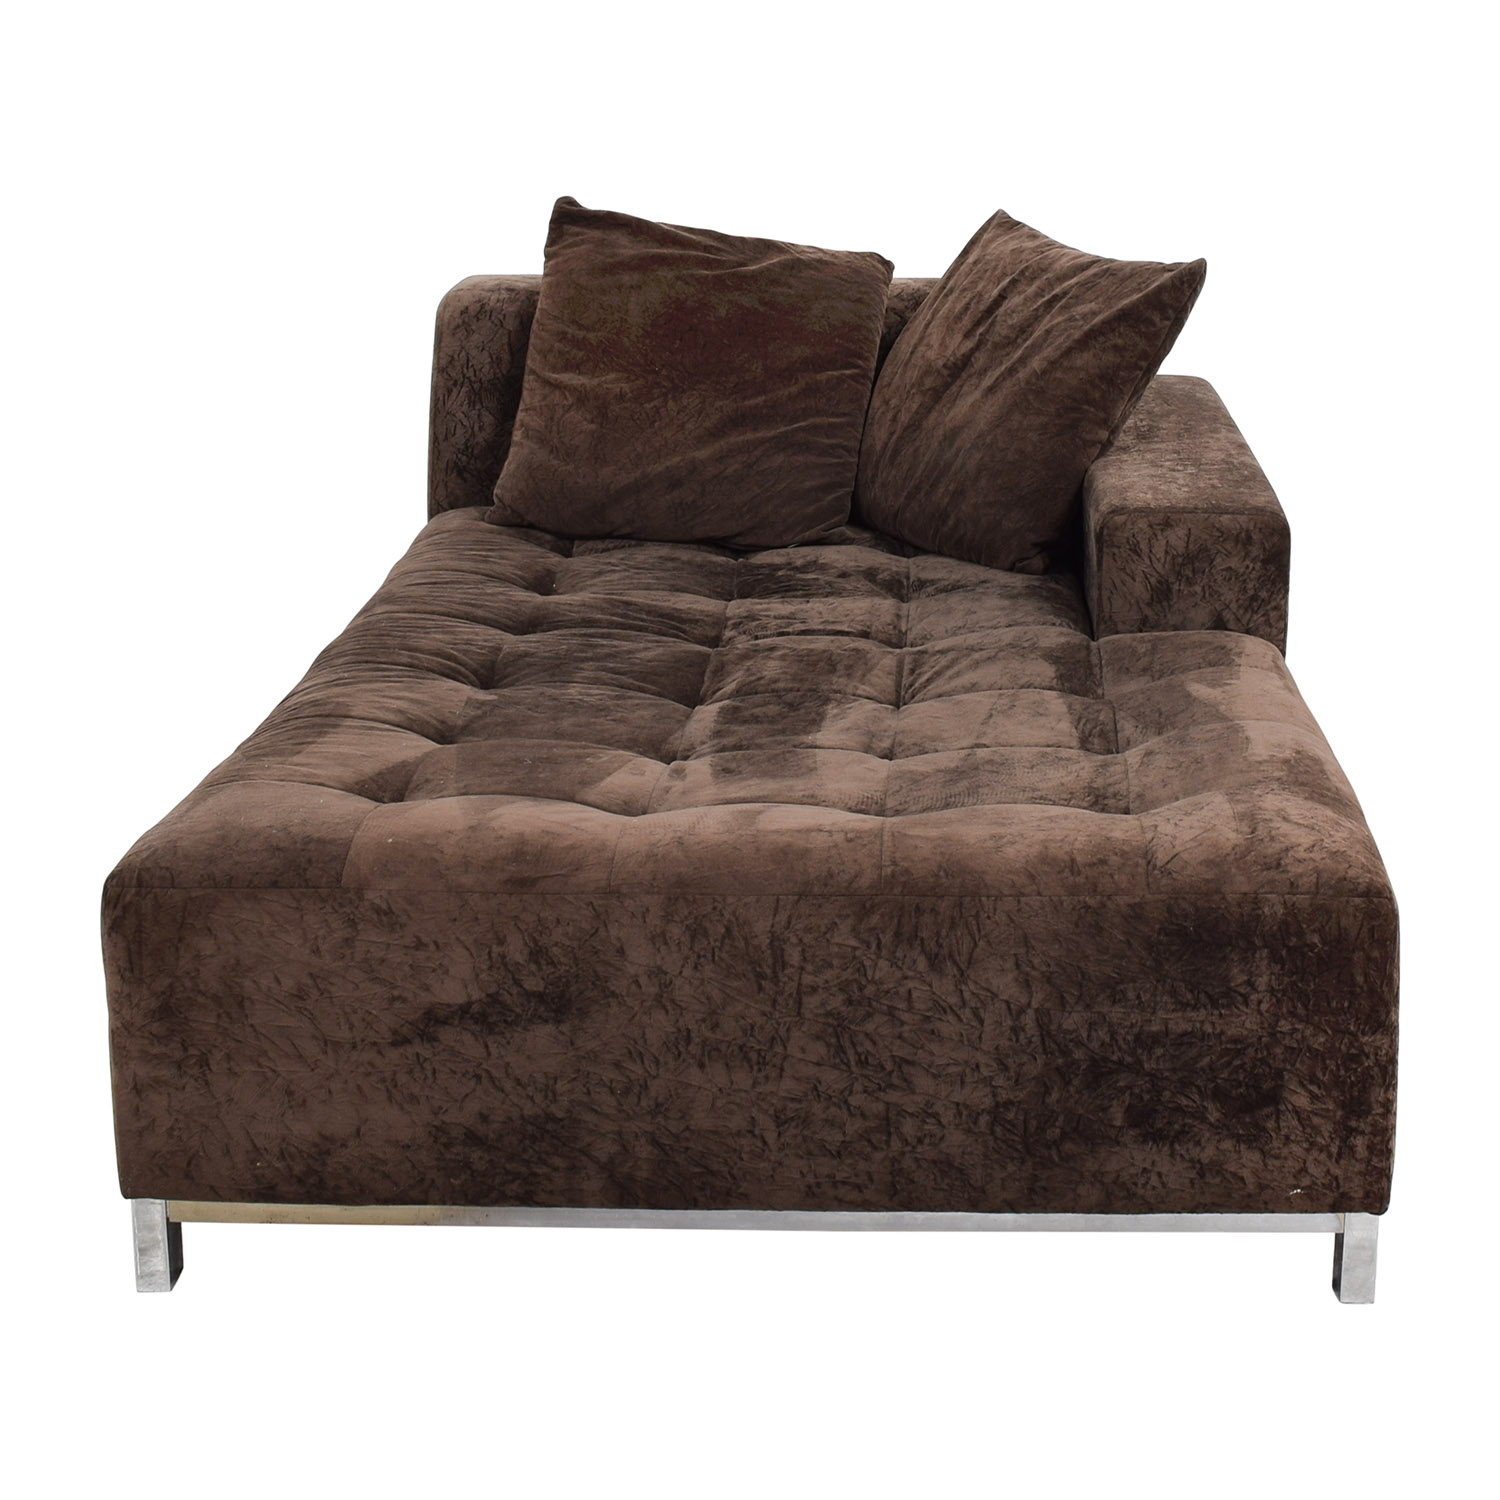 Sectionals used sectionals for sale for Brown chaise lounge sofa